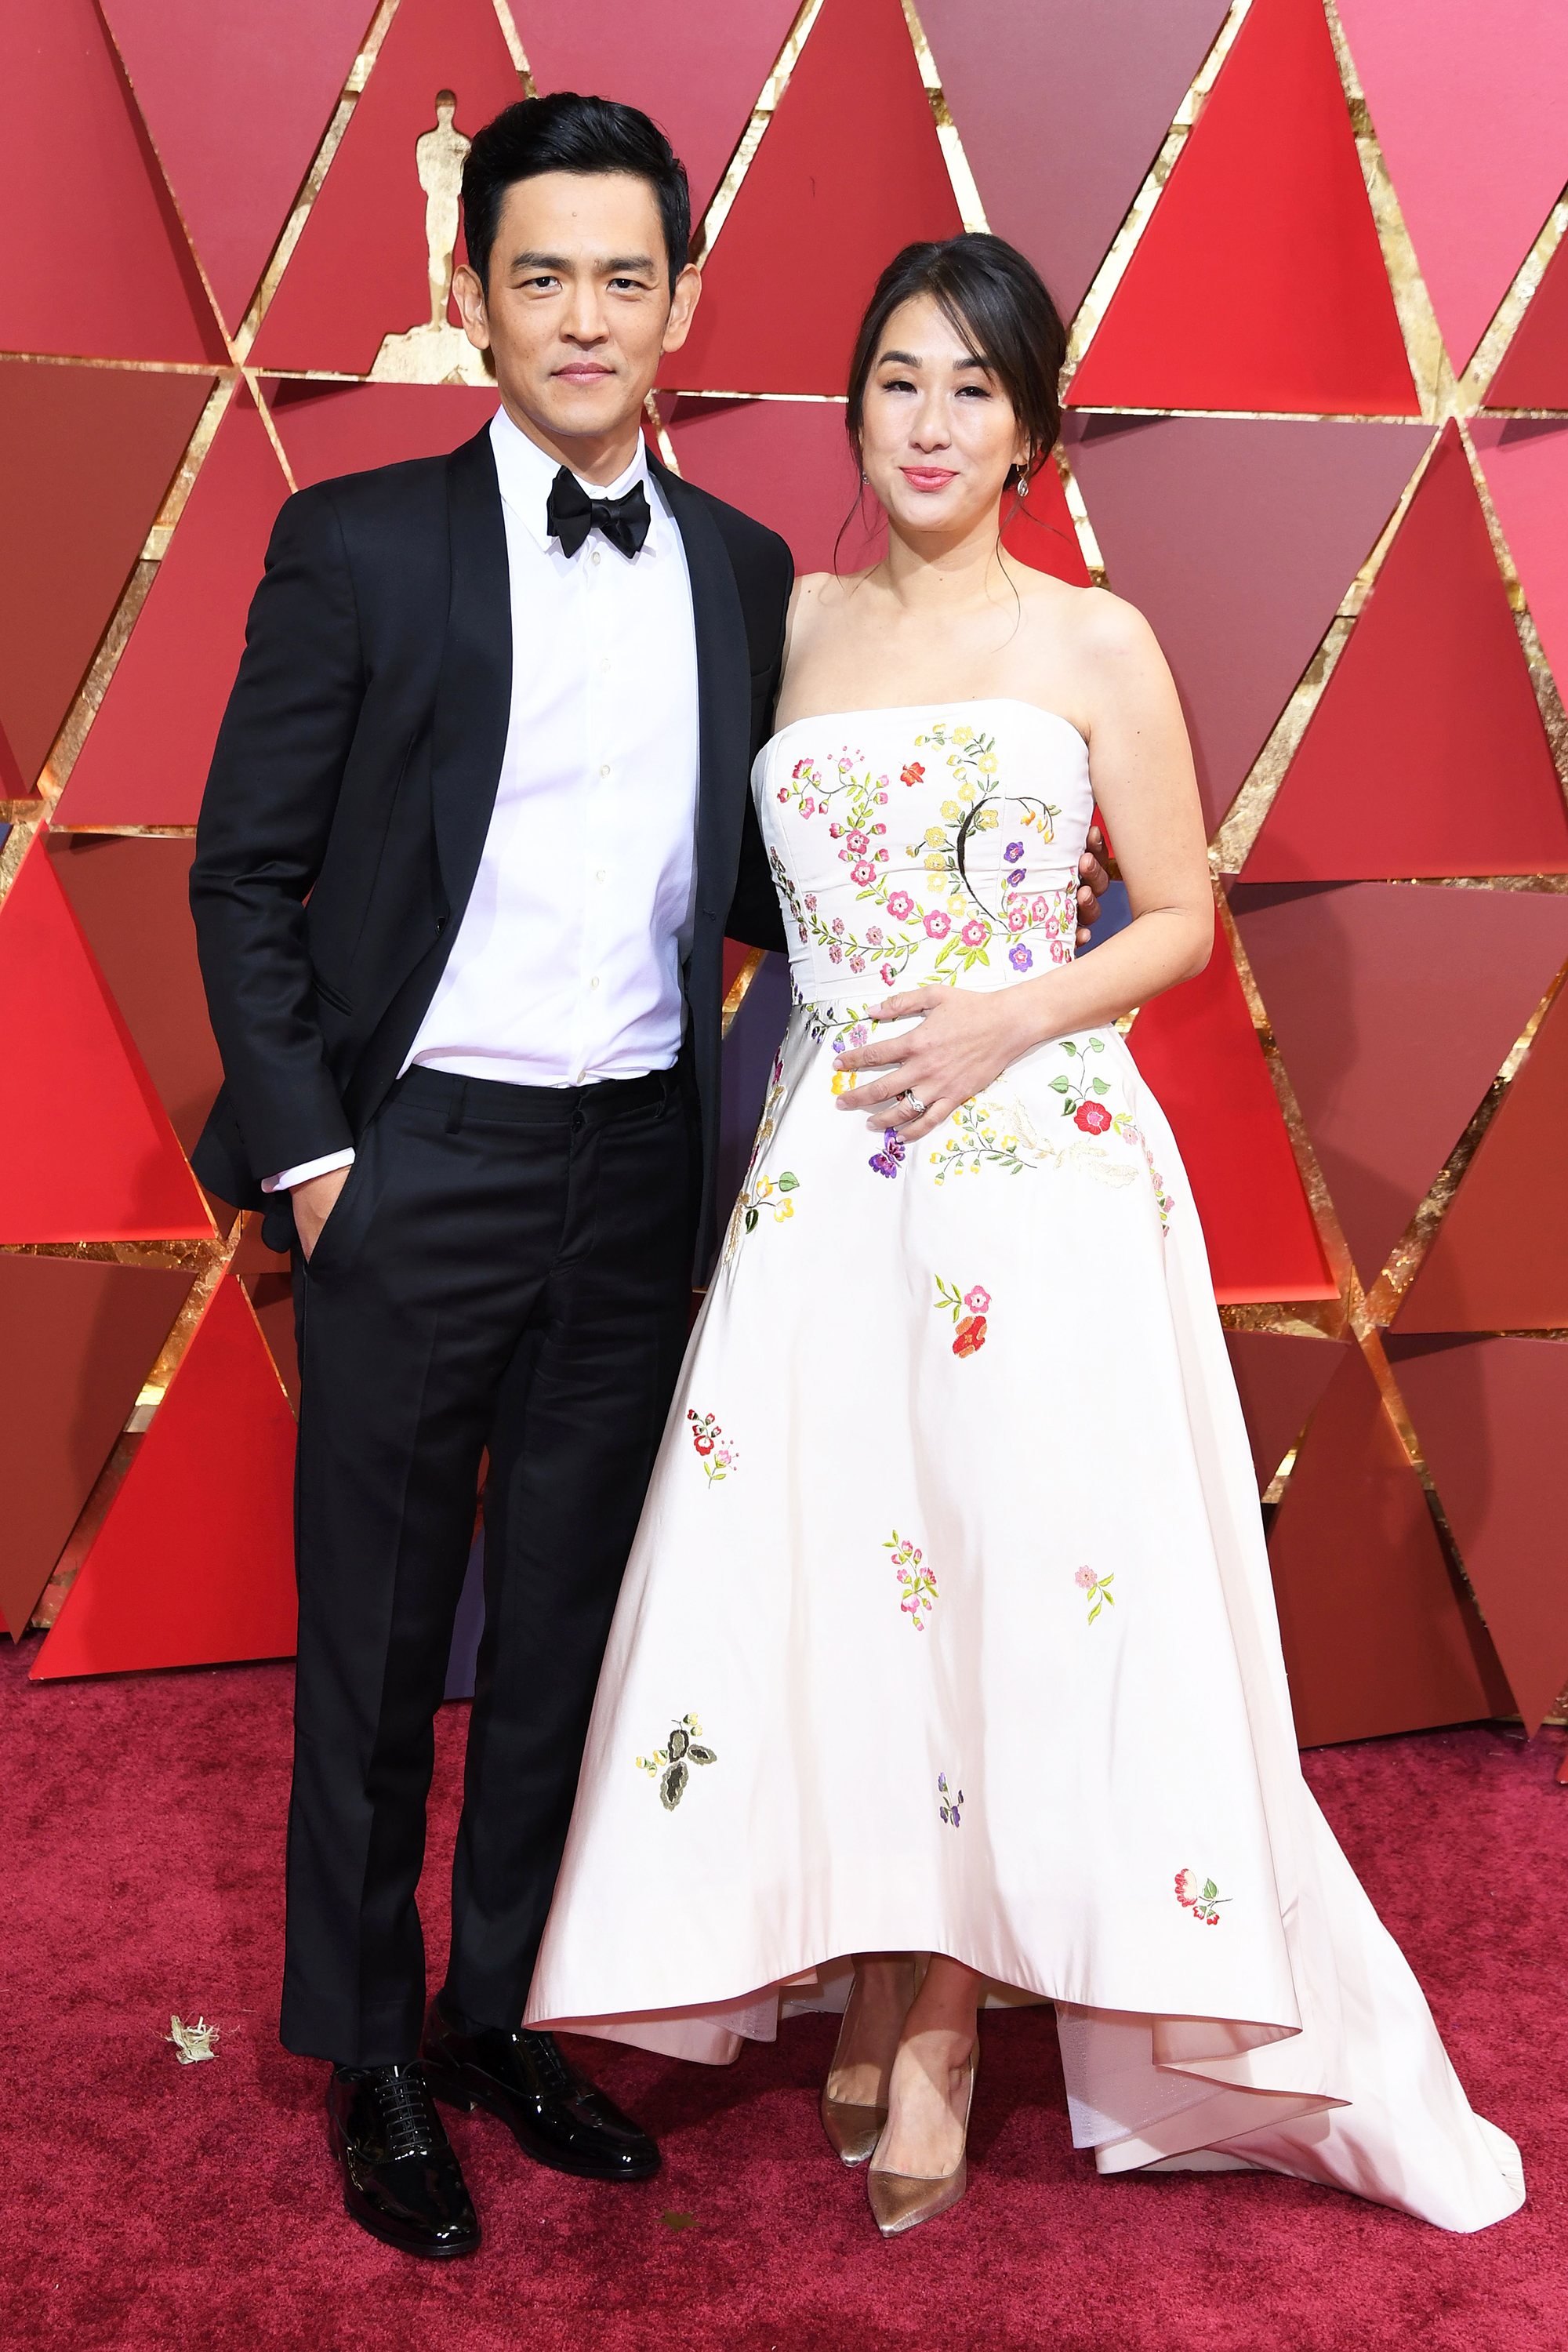 Kerri Higuchi and John Cho on the red carpet for the 89th Oscars, on Feb. 26, 2017 in Hollywood, Calif.